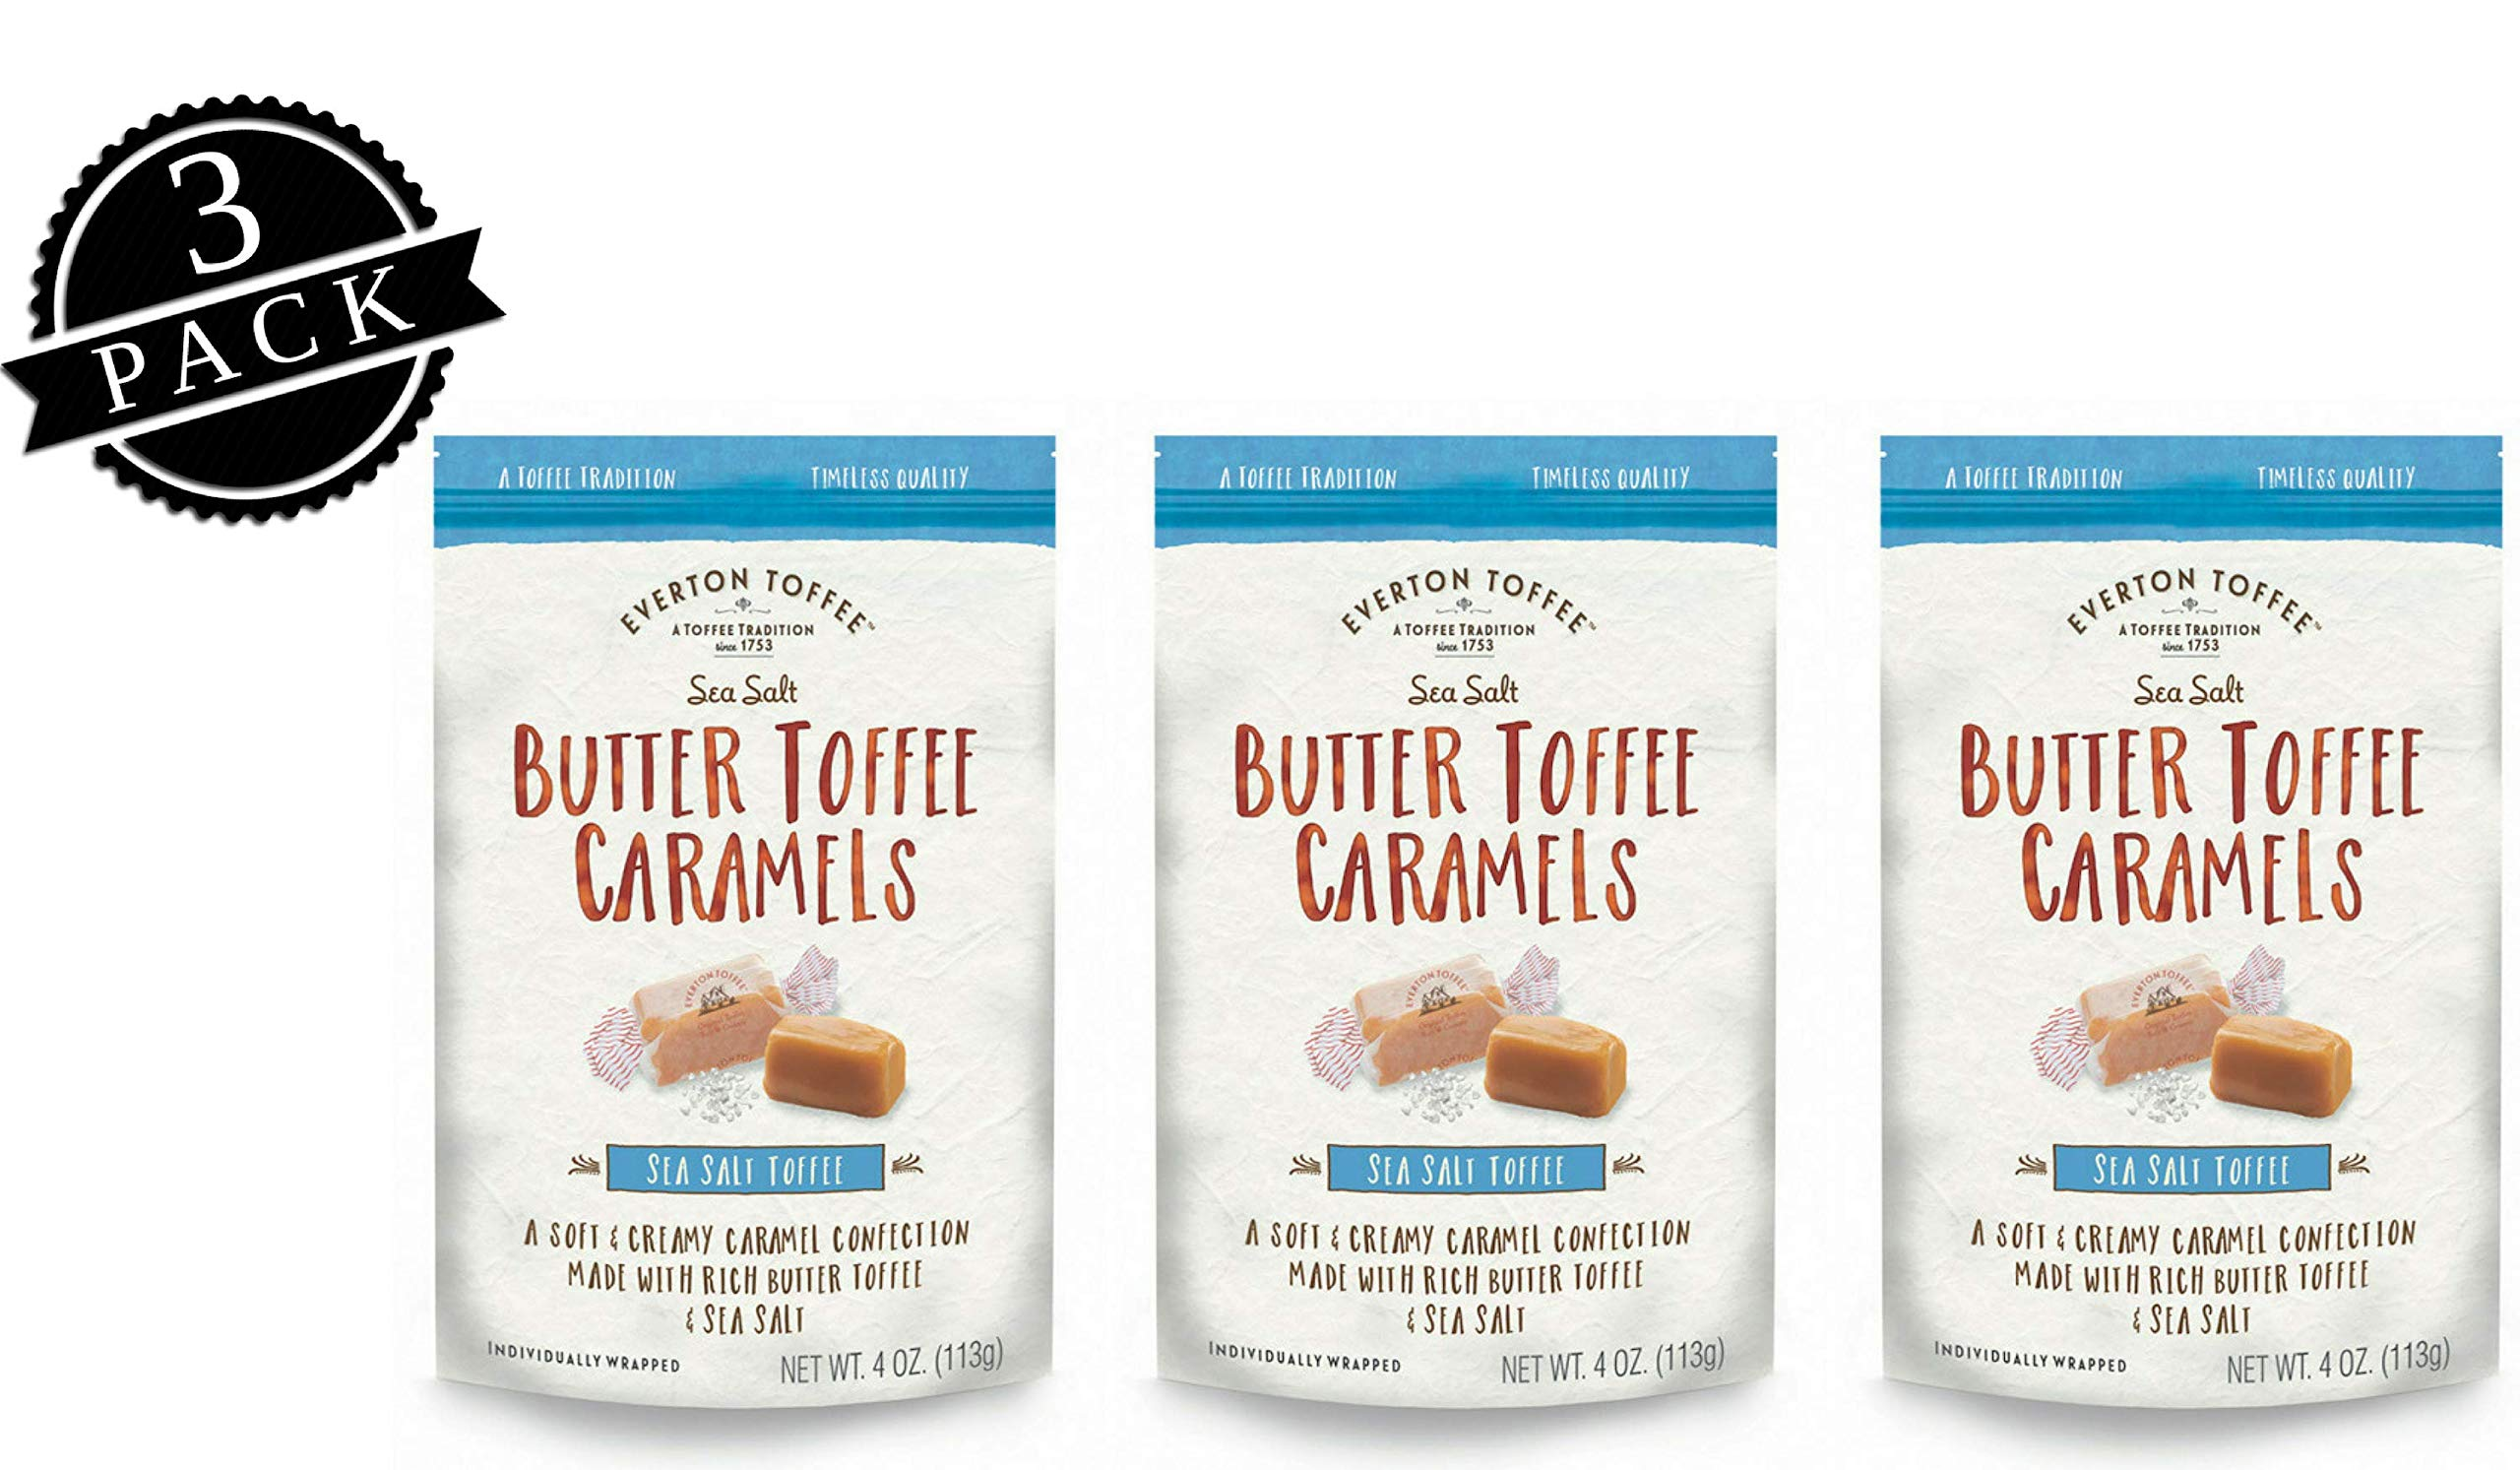 Everton Toffee Butter Toffee Caramels, Sea Salt Flavor (4 oz. bag, 3-pack). Gourmet, Artisan Soft and Creamy Toffee Caramels, Small Batch Crafted Carmel Candy Treats by Everton Toffee